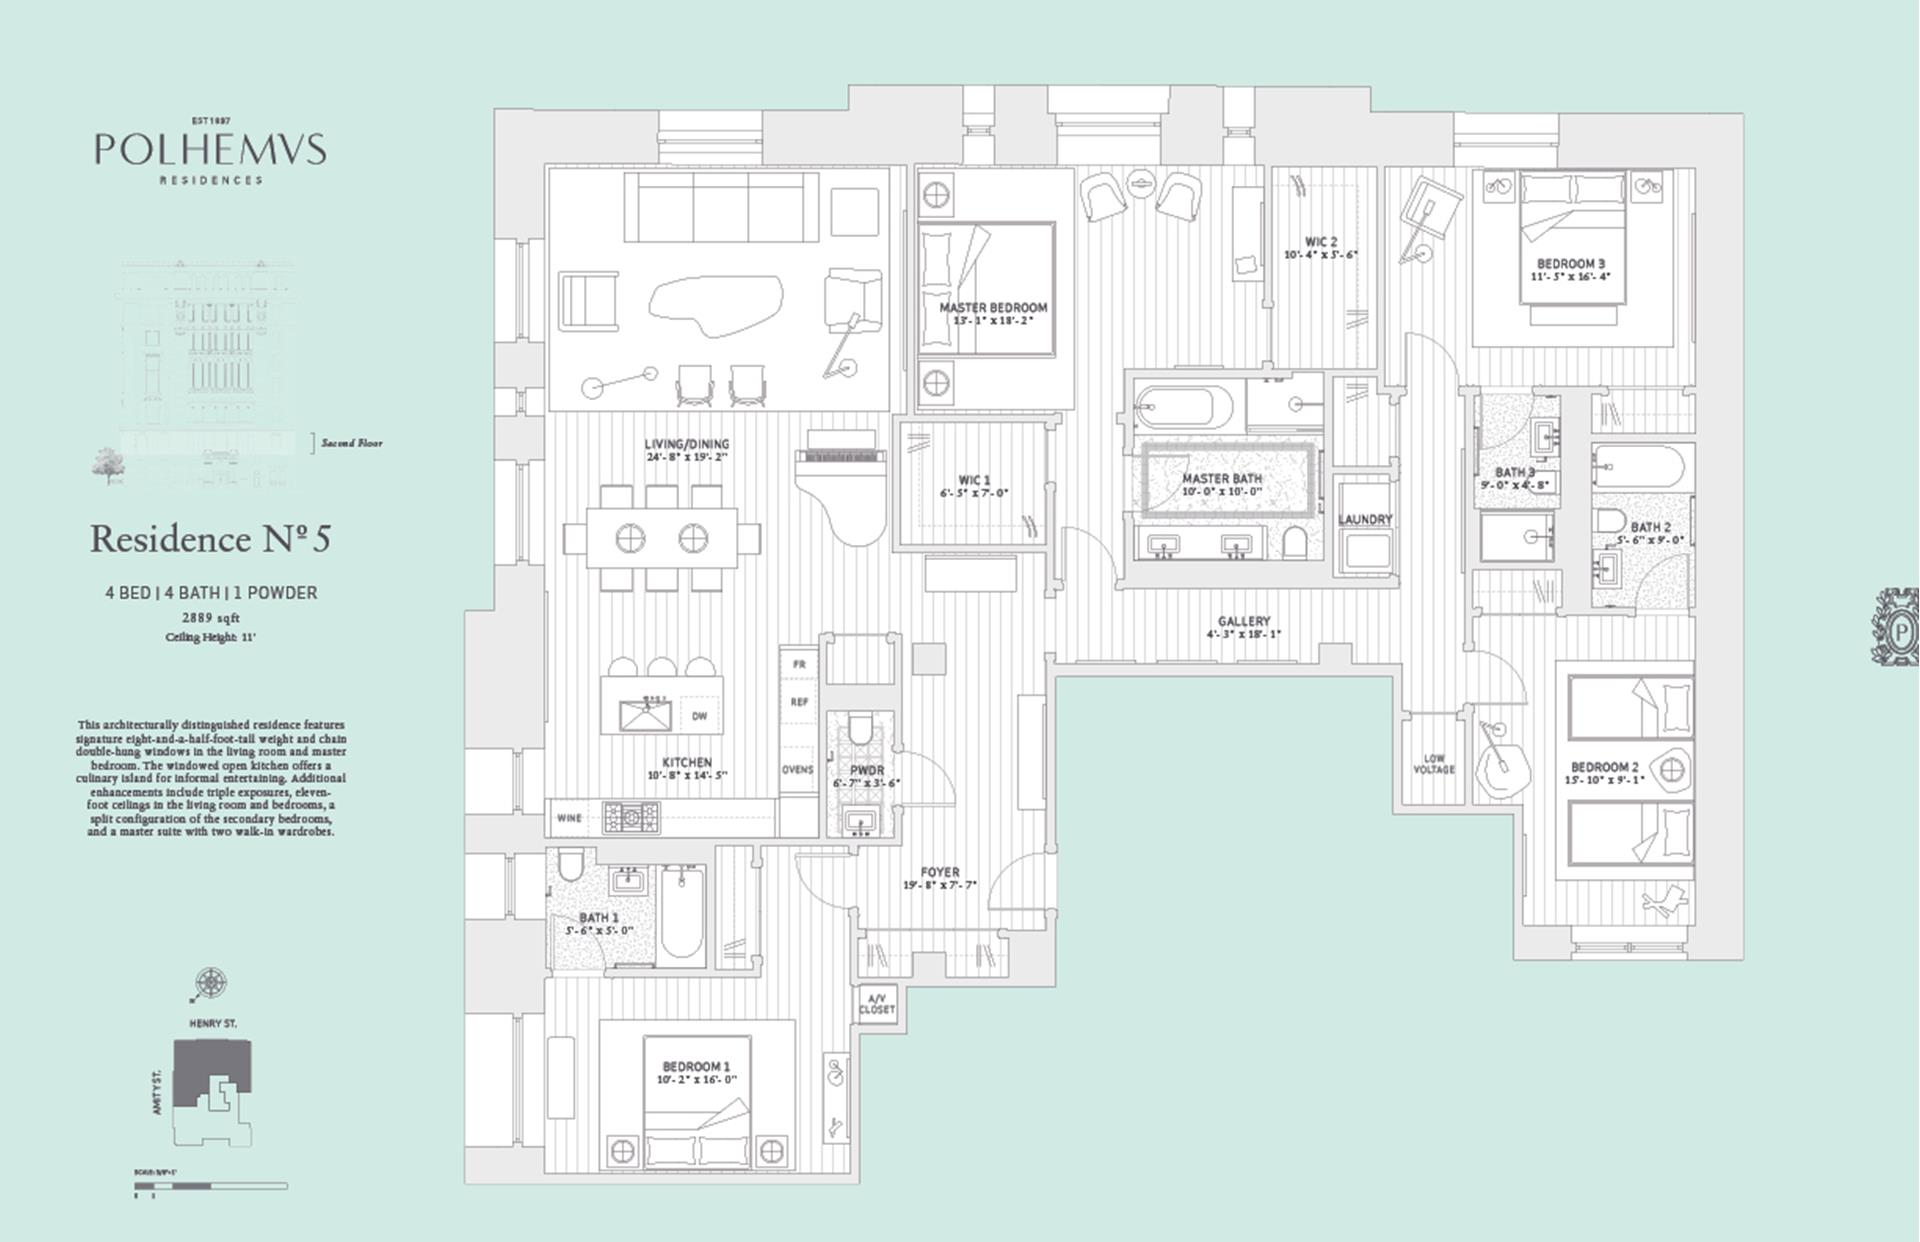 Floor plan of Polhemus, 100 Amity St, RESIDENCE5 - Cobble Hill, New York